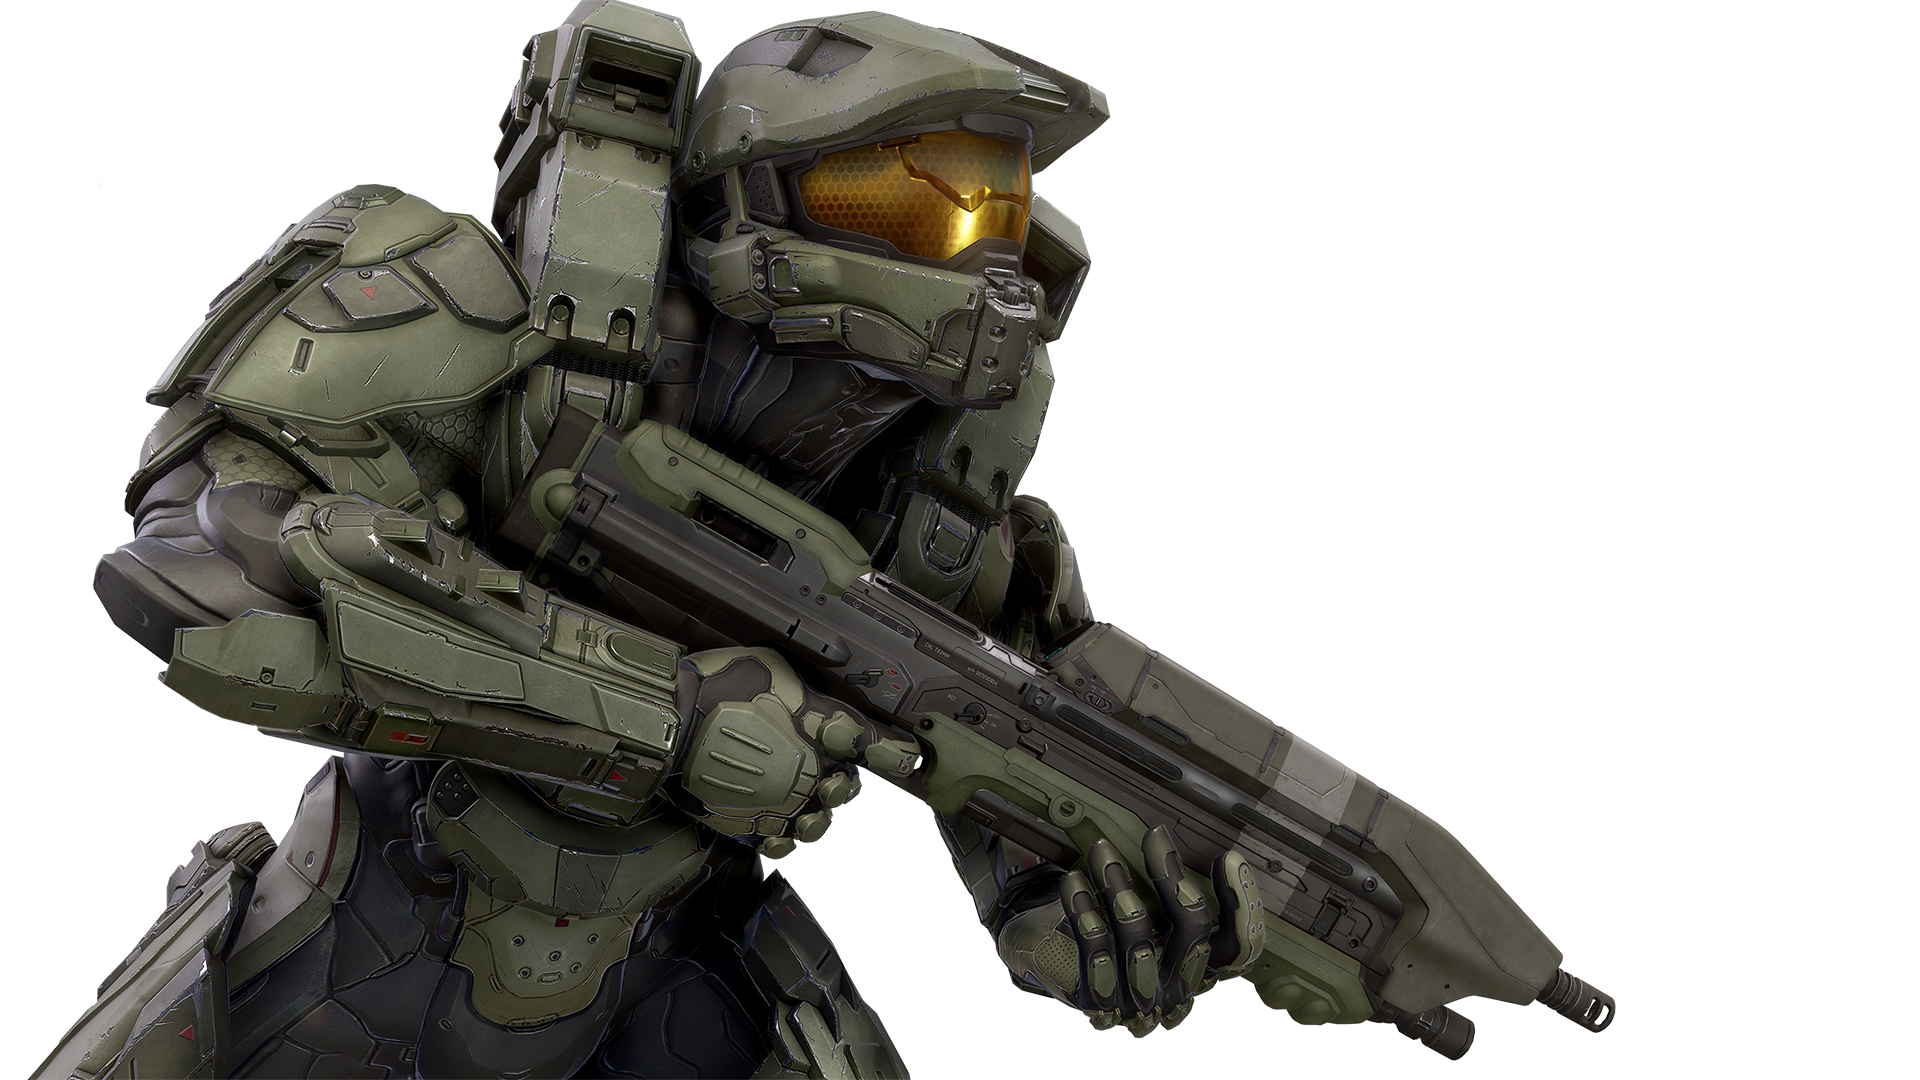 master chief halo 5 - photo #28